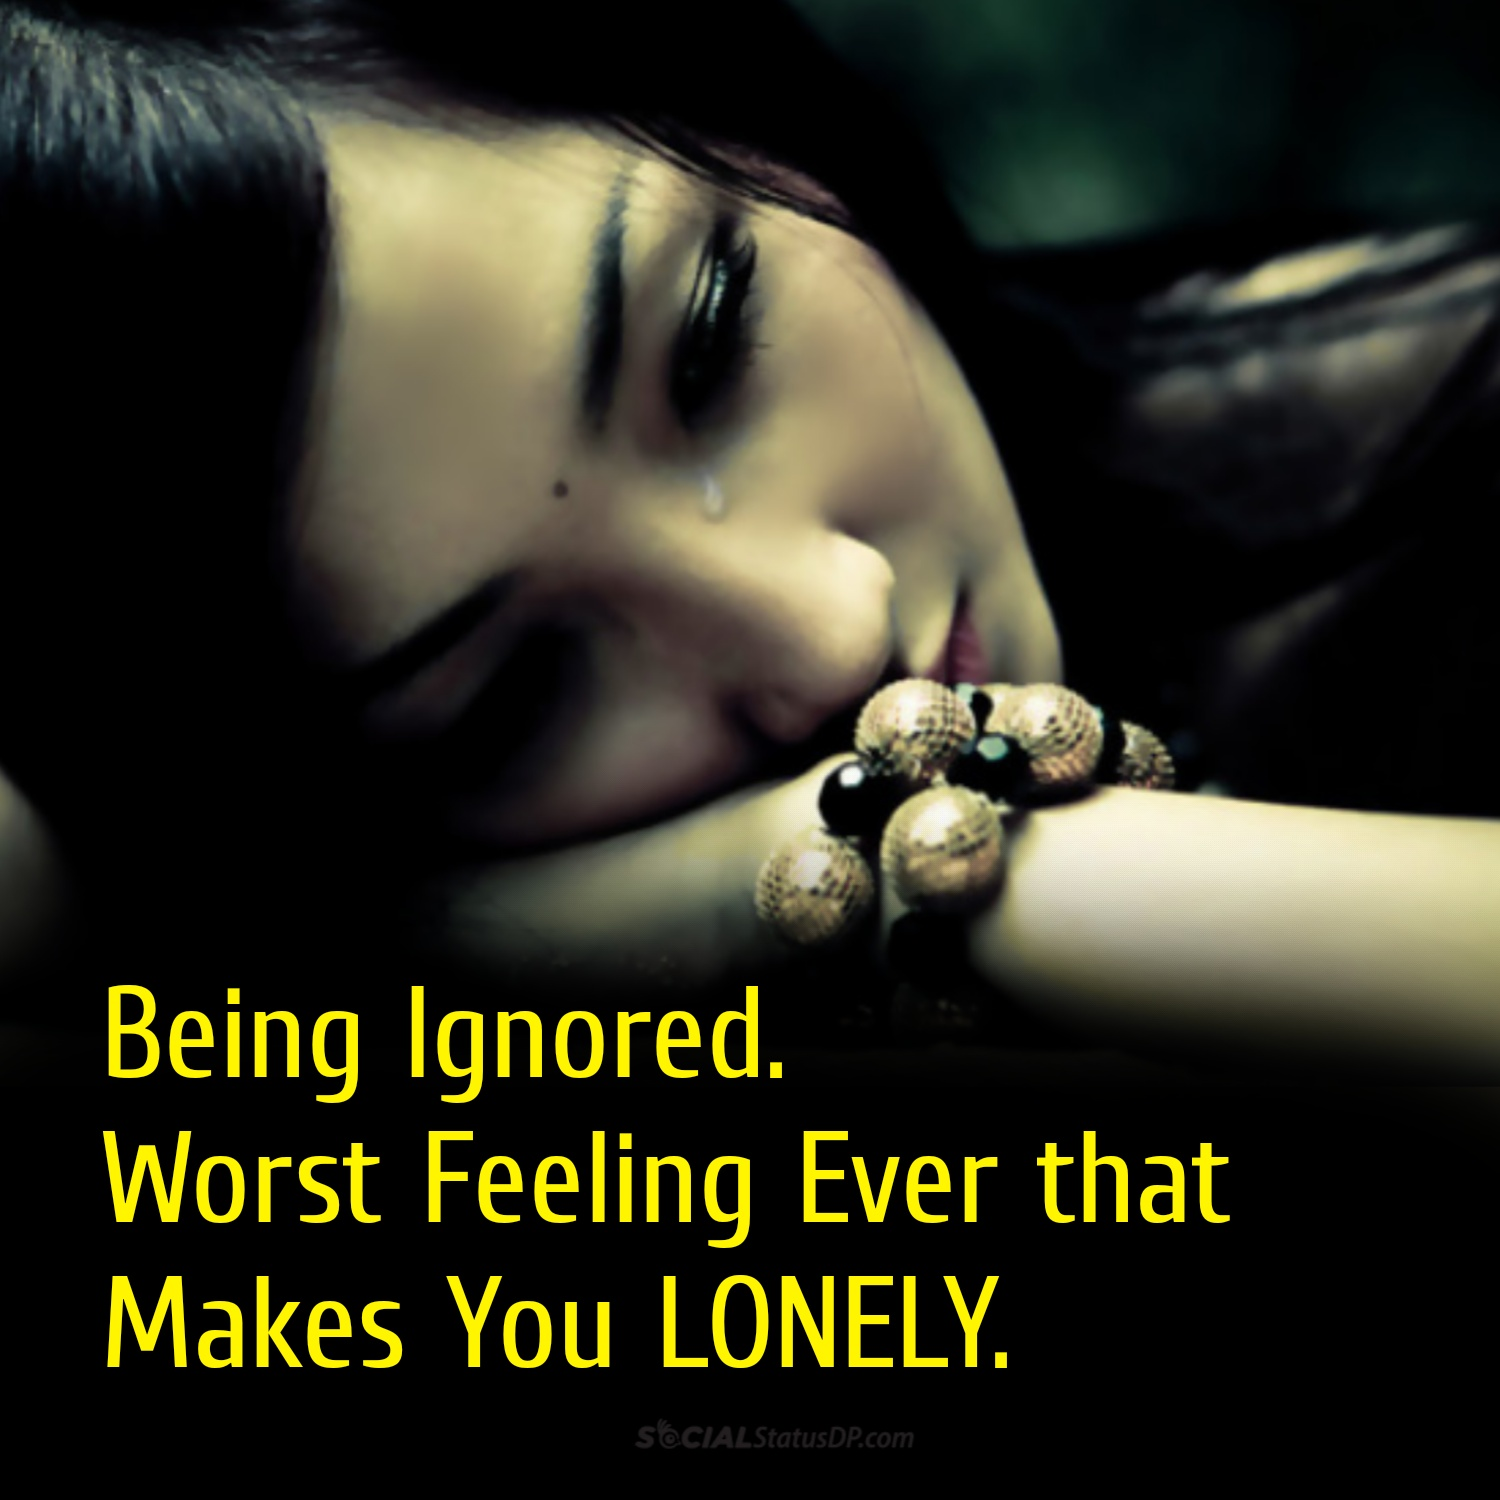 101 Best Whatsapp Lonely Status Alone Quotes Loneliness Quotes Status Dp Images Socialstatusdp Com